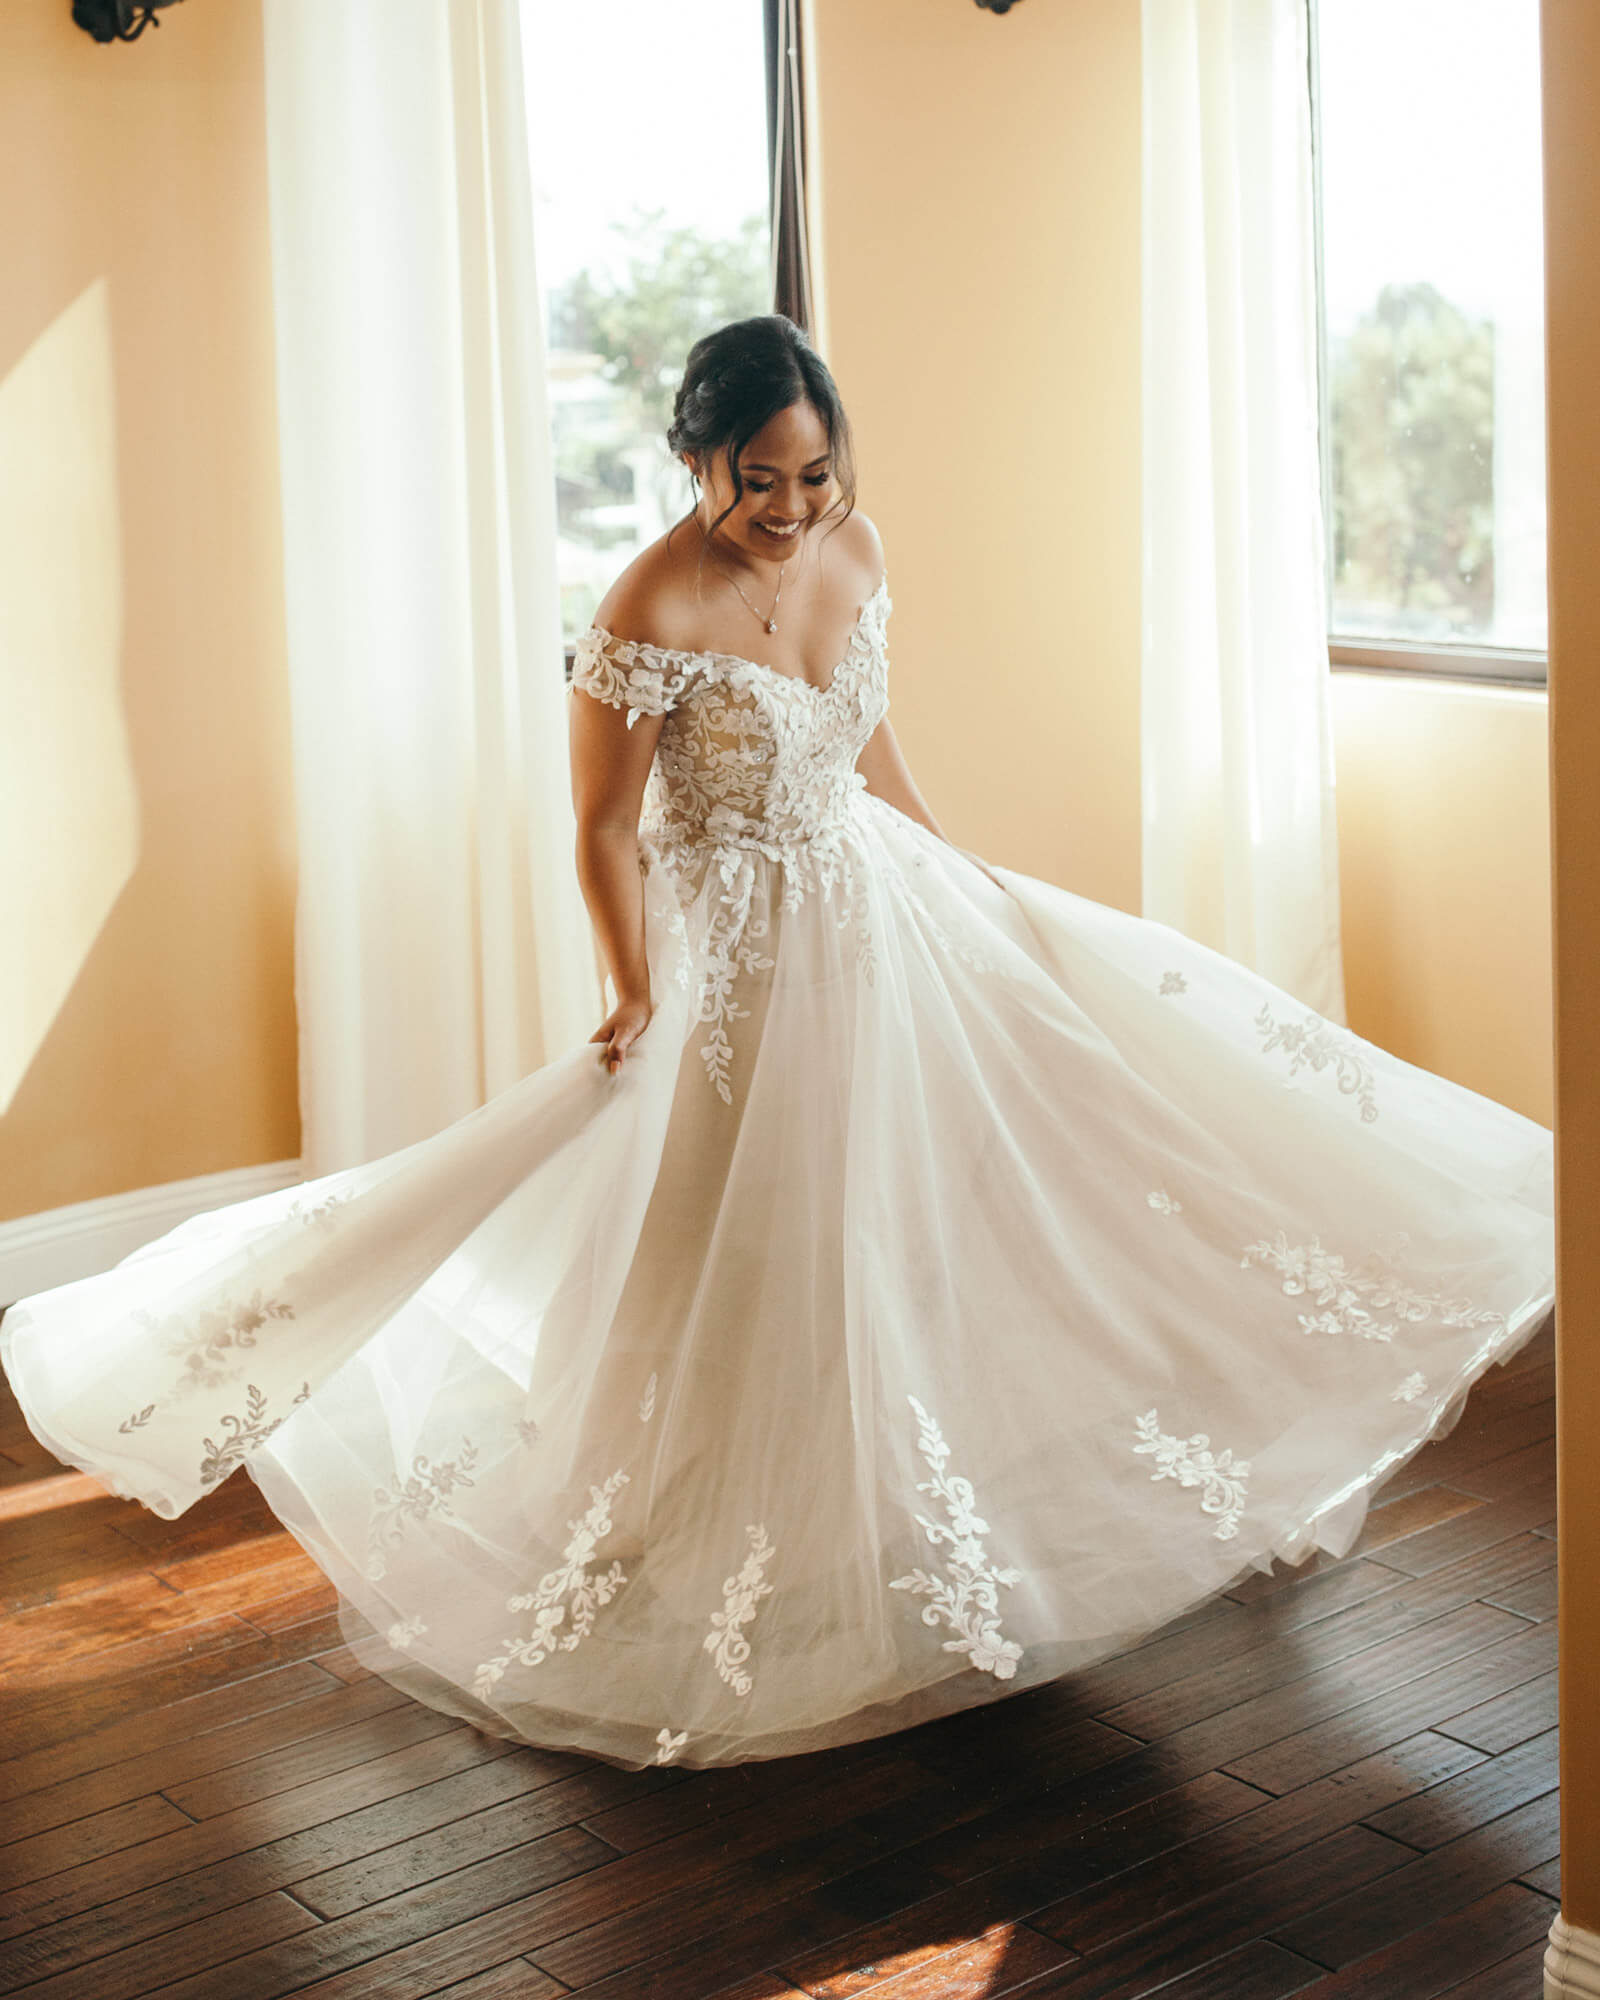 With a twirl-worthy dress this beautiful, we'd be beaming, too!